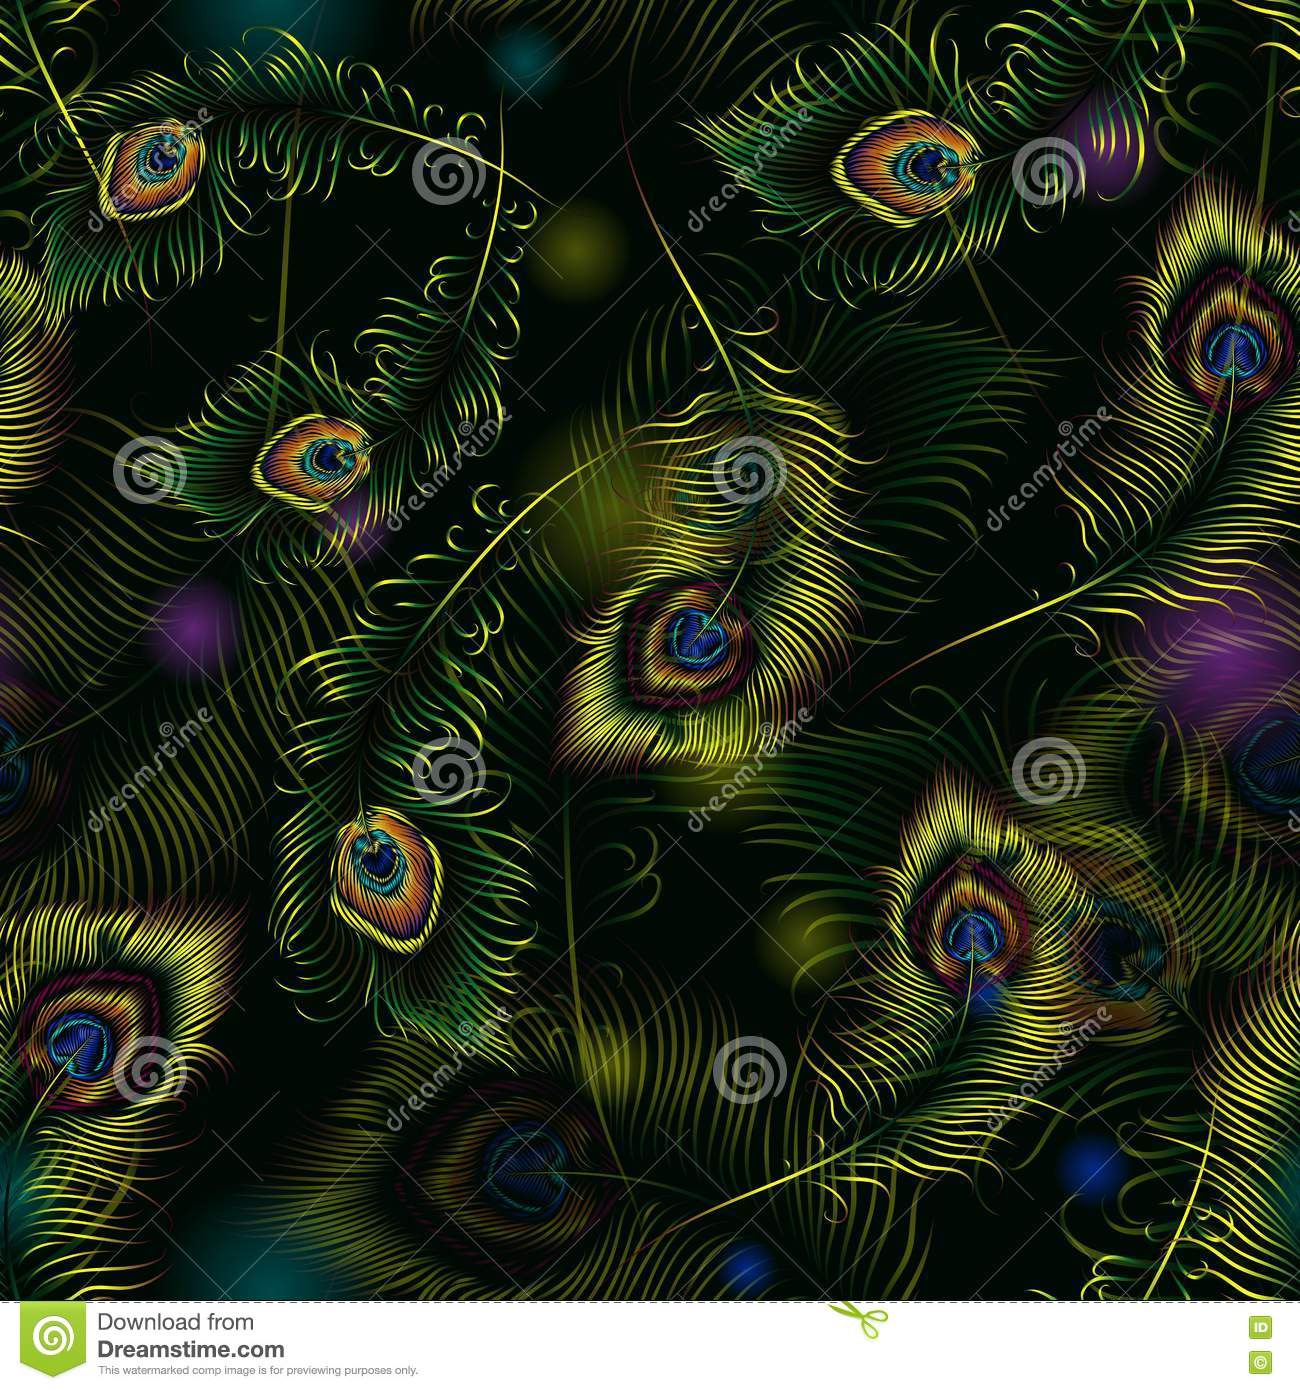 vector abstract peacock seamless - photo #19